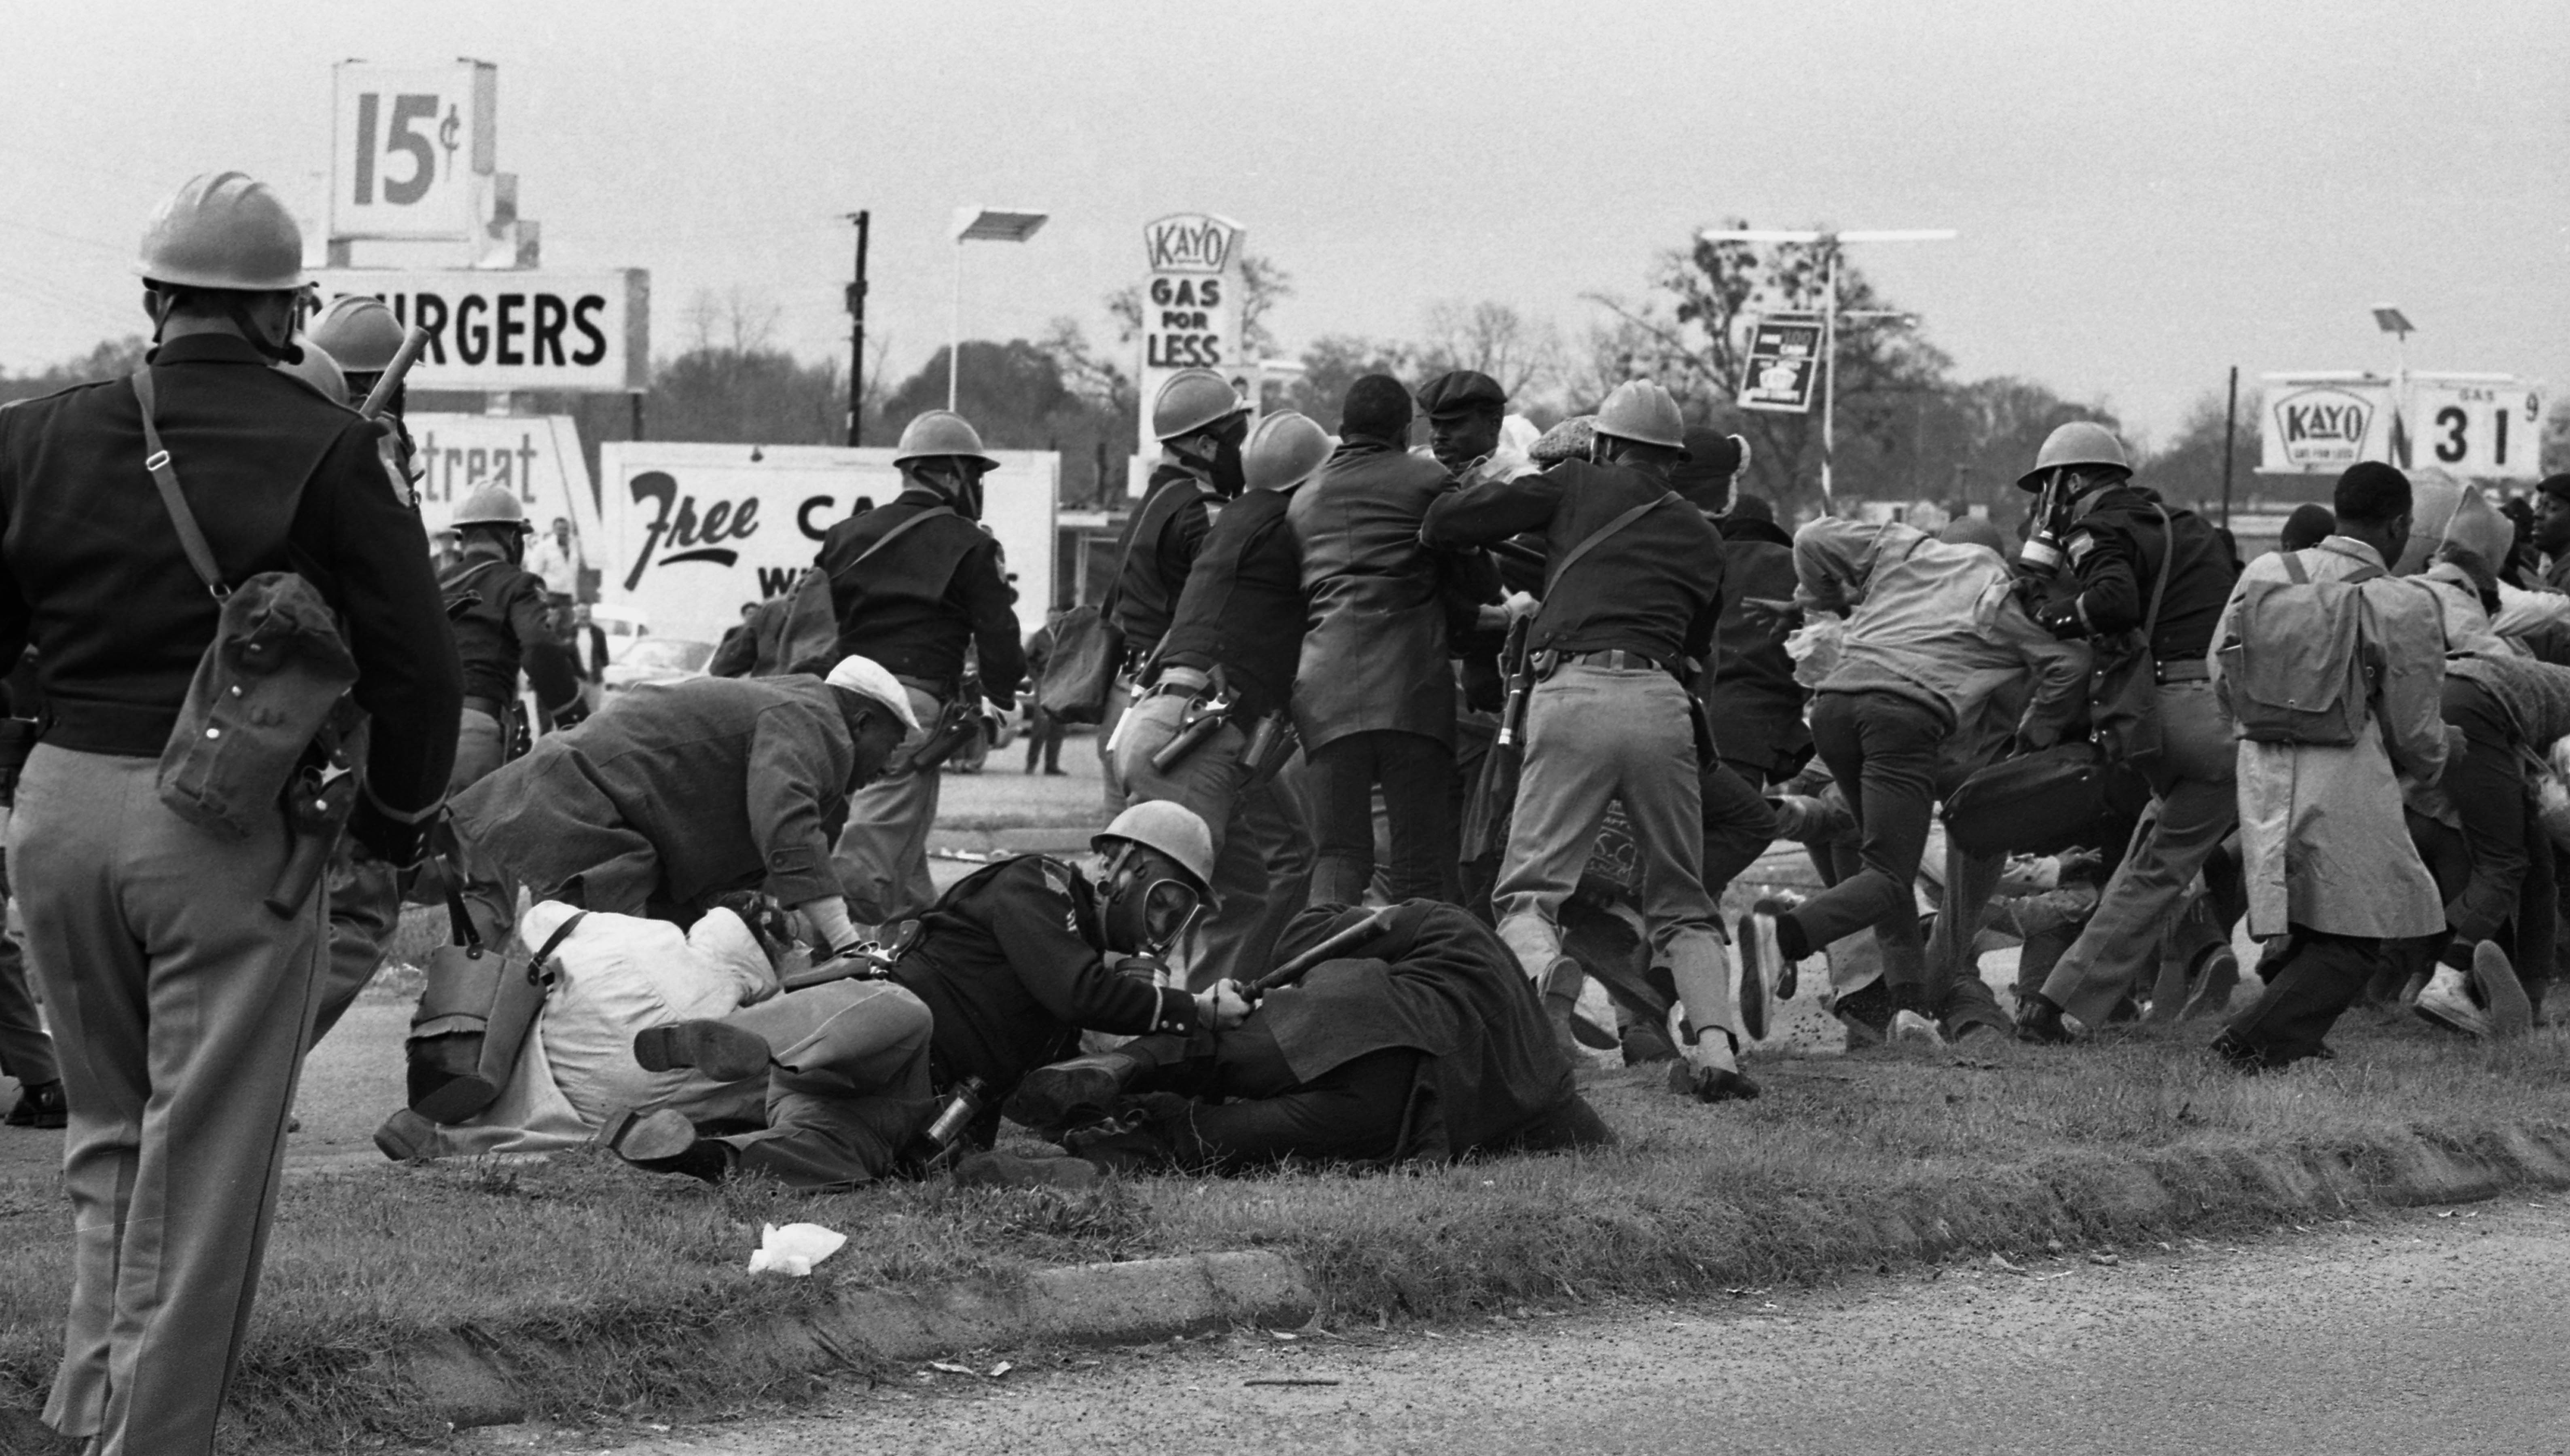 John Lewis and the Police in Selma